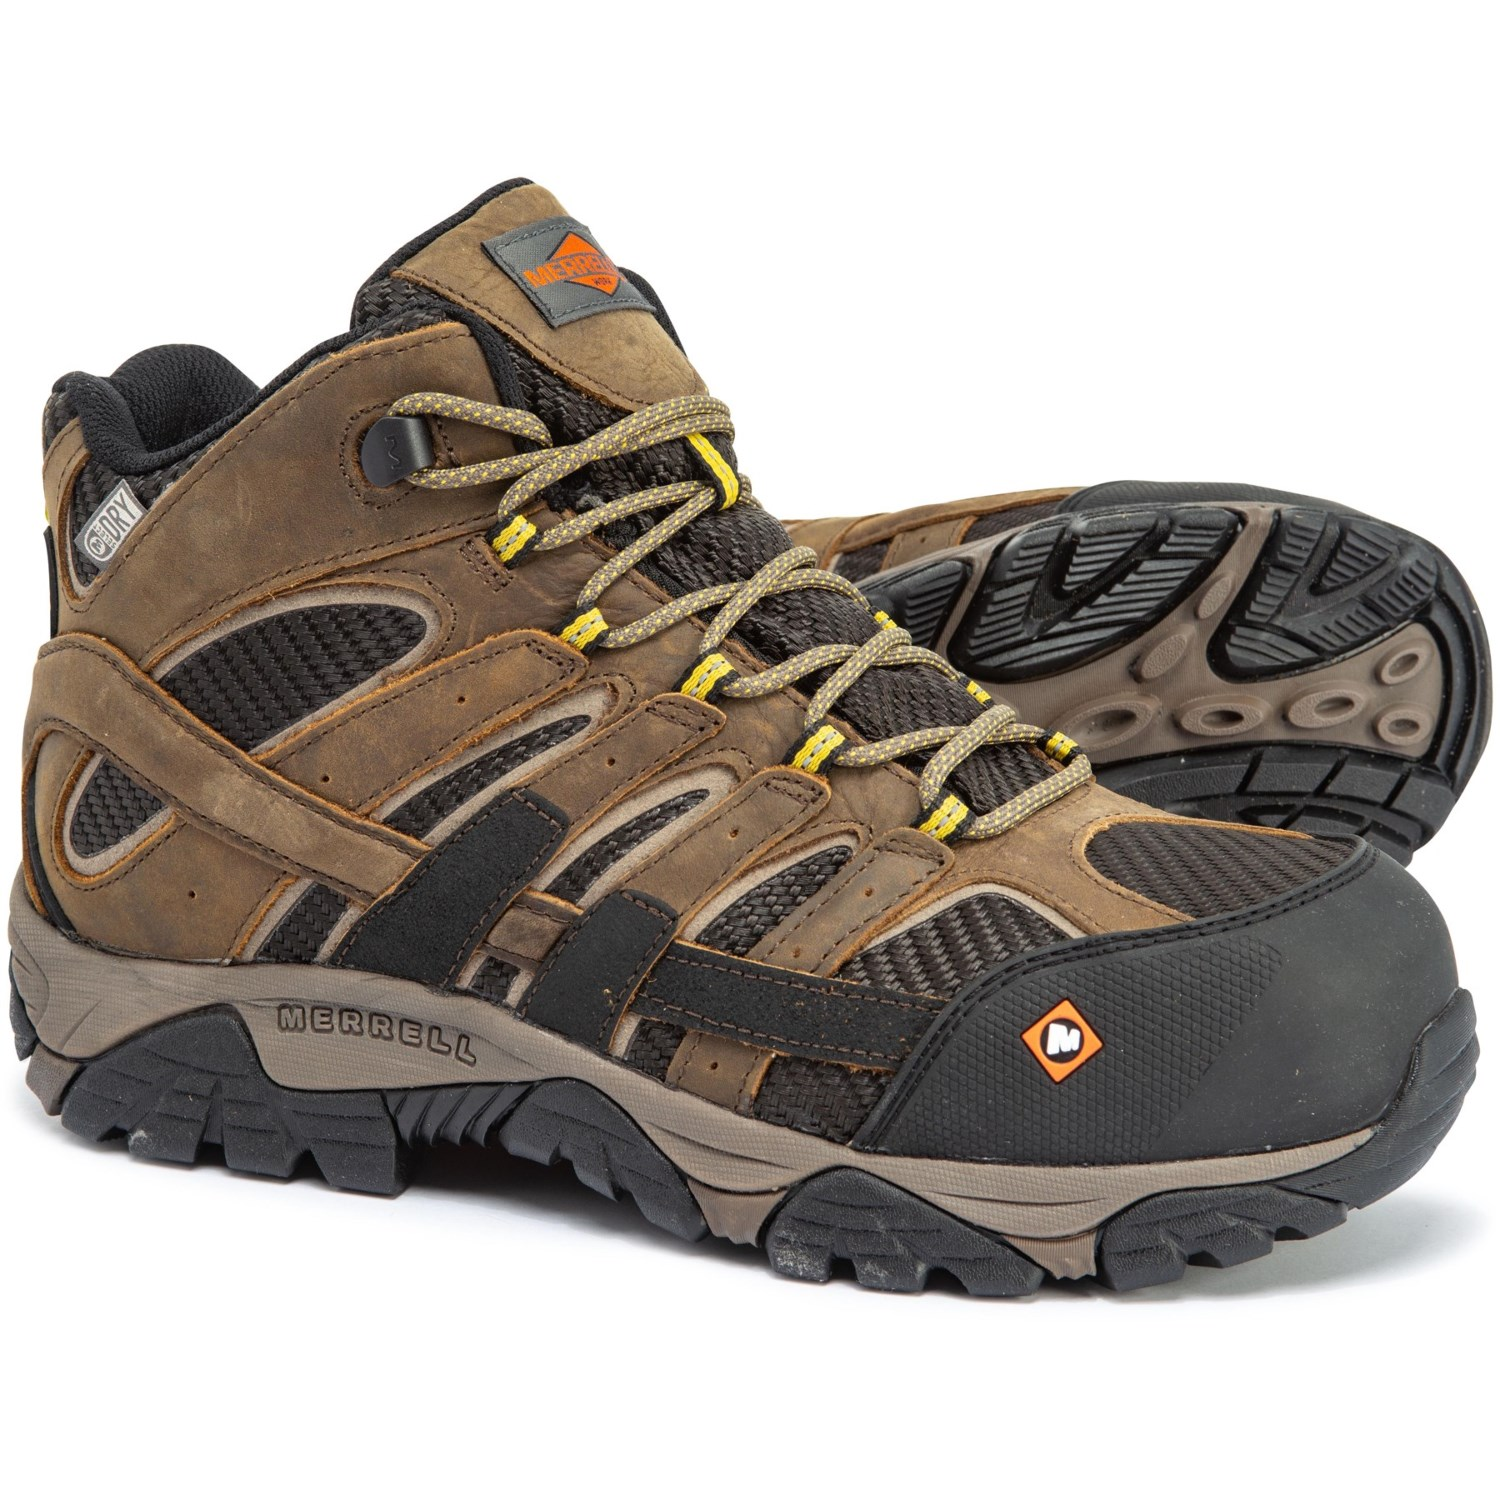 addd01e949b Merrell Moab 2 Vent Work Boots (For Men) - Save 54%